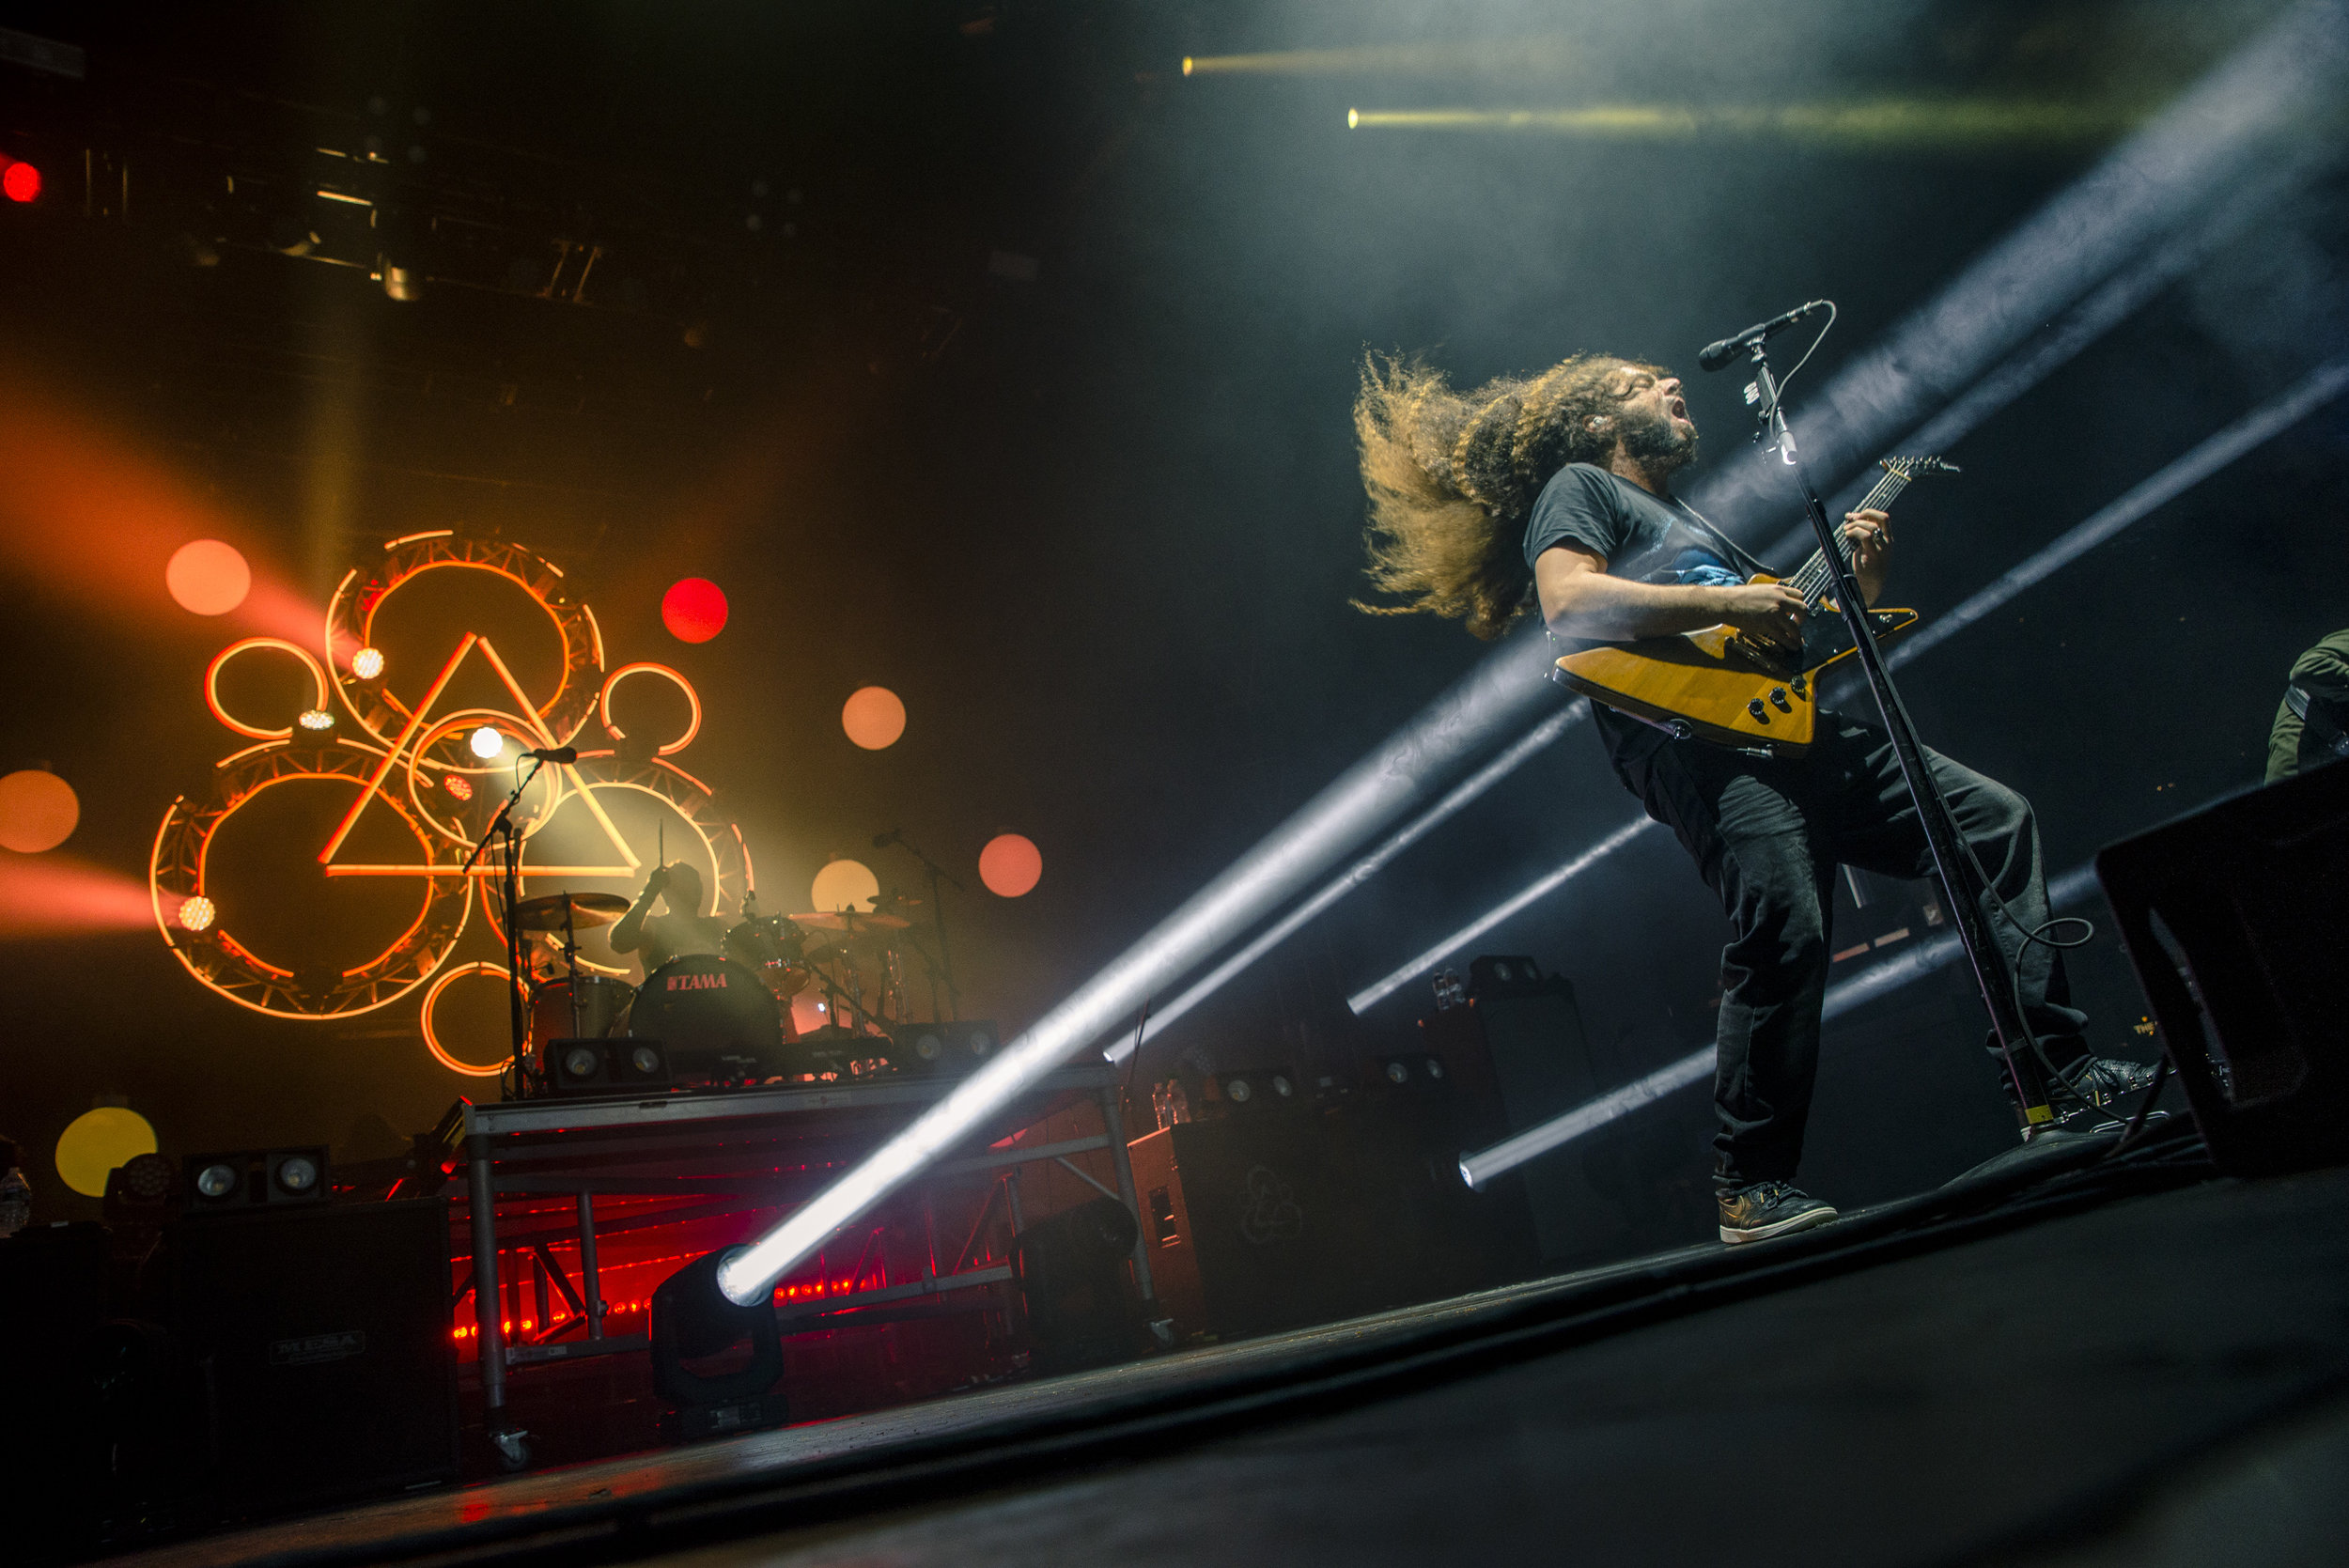 Coheed&Cambria@Sculpture_AustinVoldseth-52.jpg